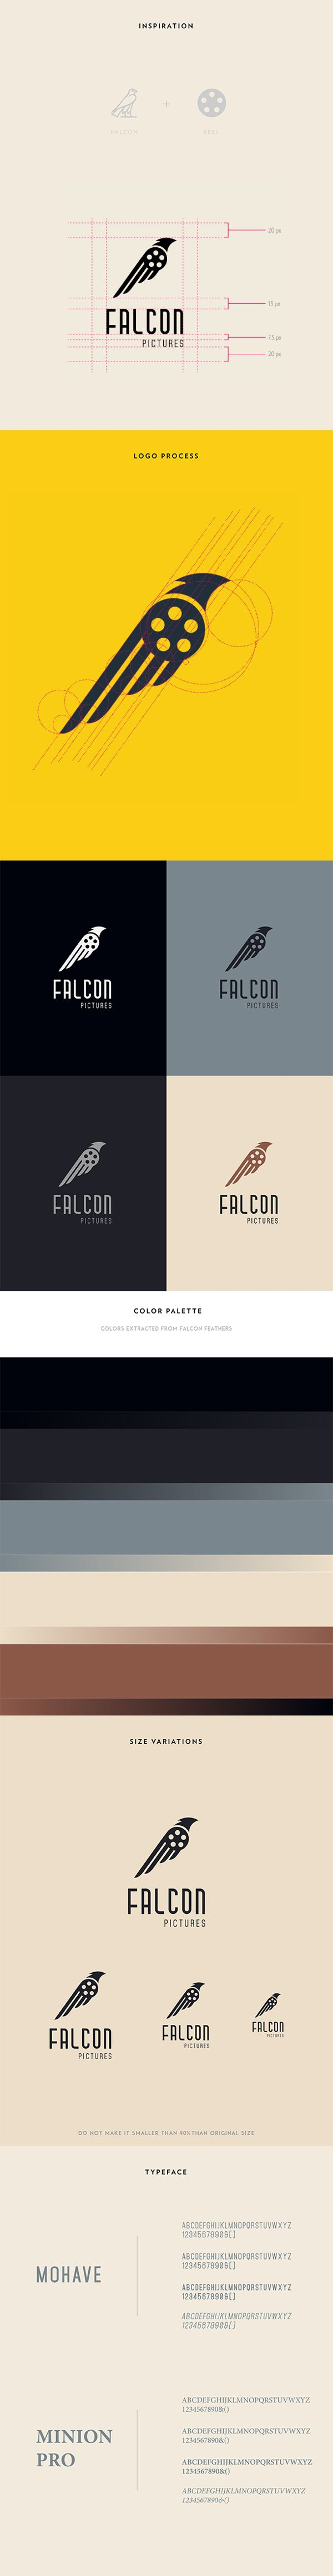 Falcon Pictures Logo Design by Grunz Saint, via Behance.